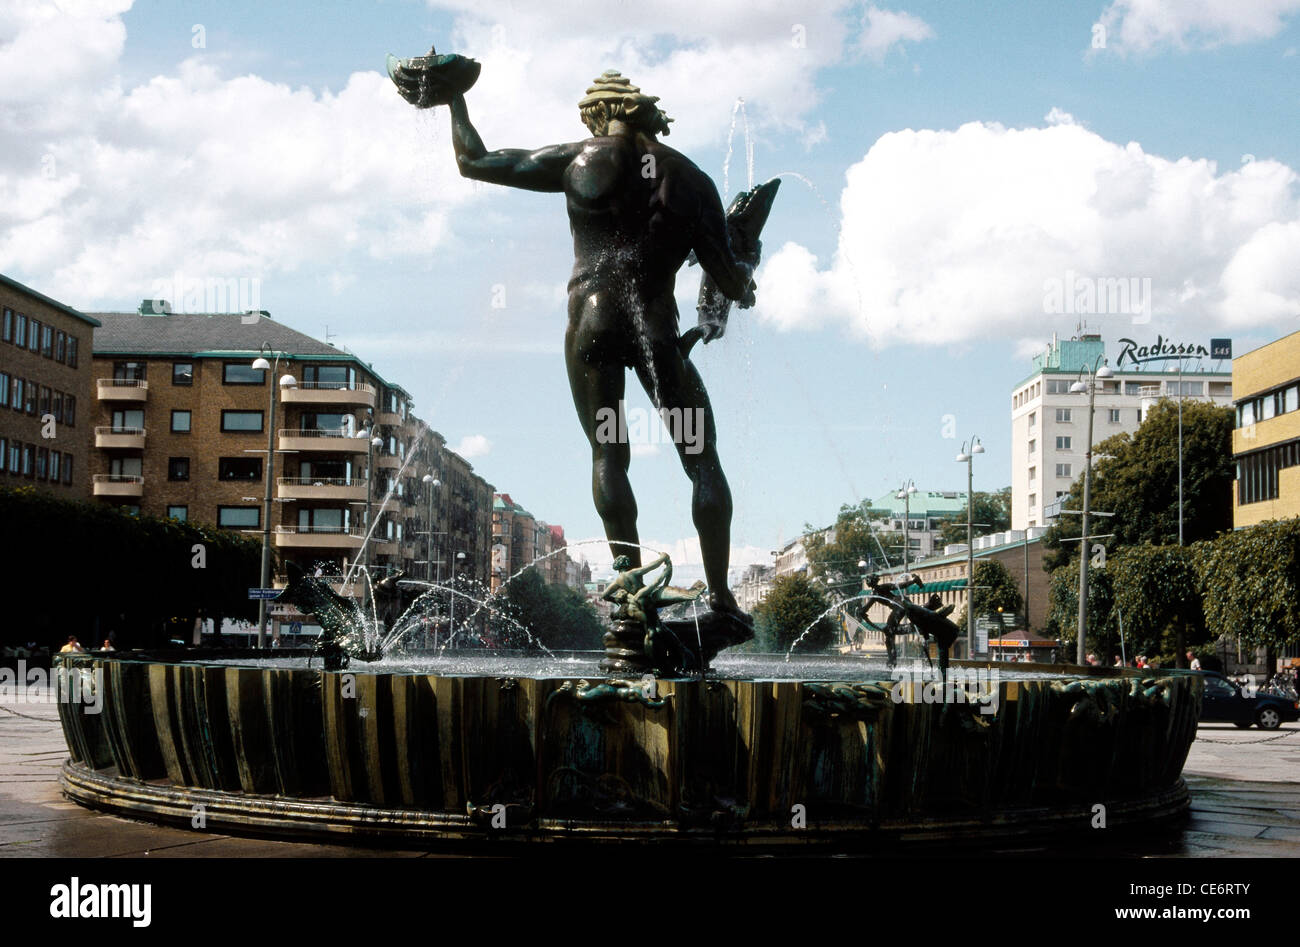 ANG 87871 : Statue of Poseidon water fountain roundabout Gotaplatsen Gothenburg Sweden - Stock Image